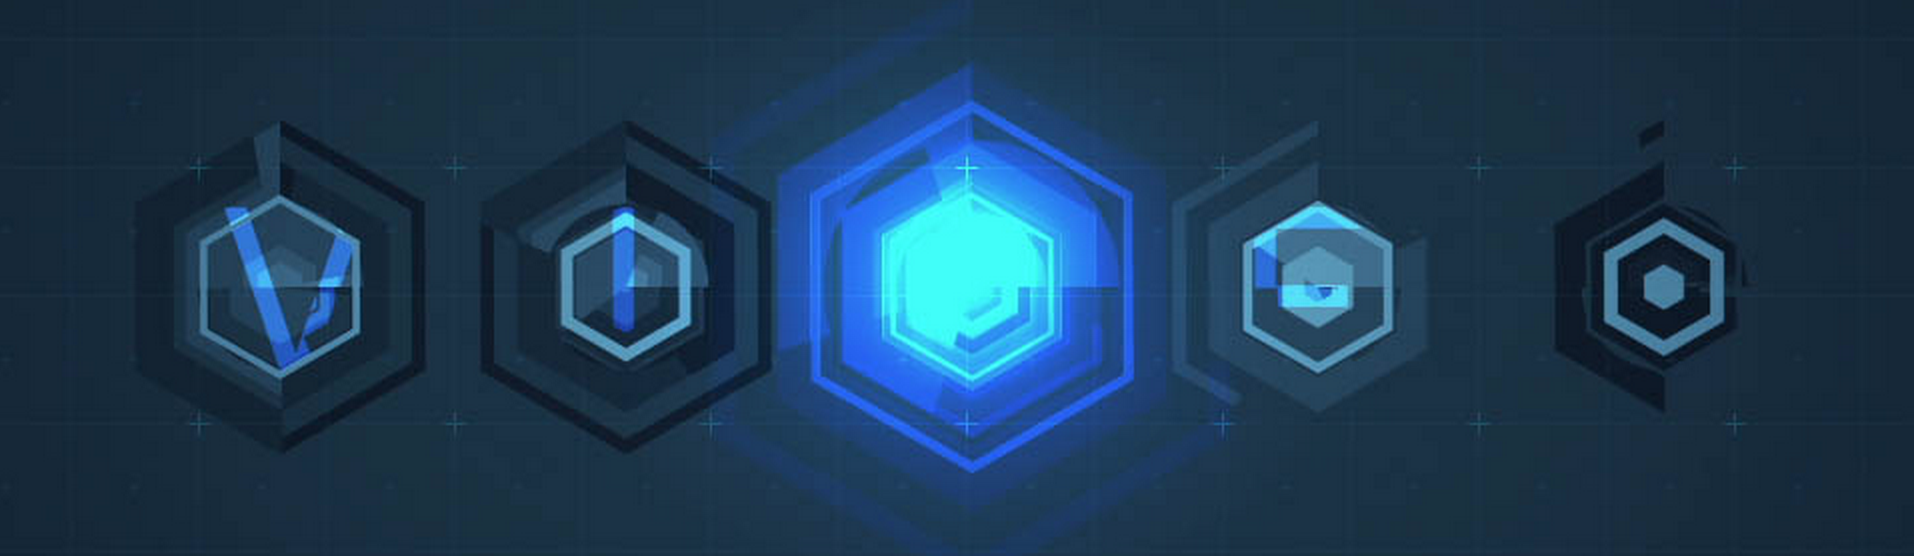 After Effects Video Tutorial: 2D Animated Shapes.